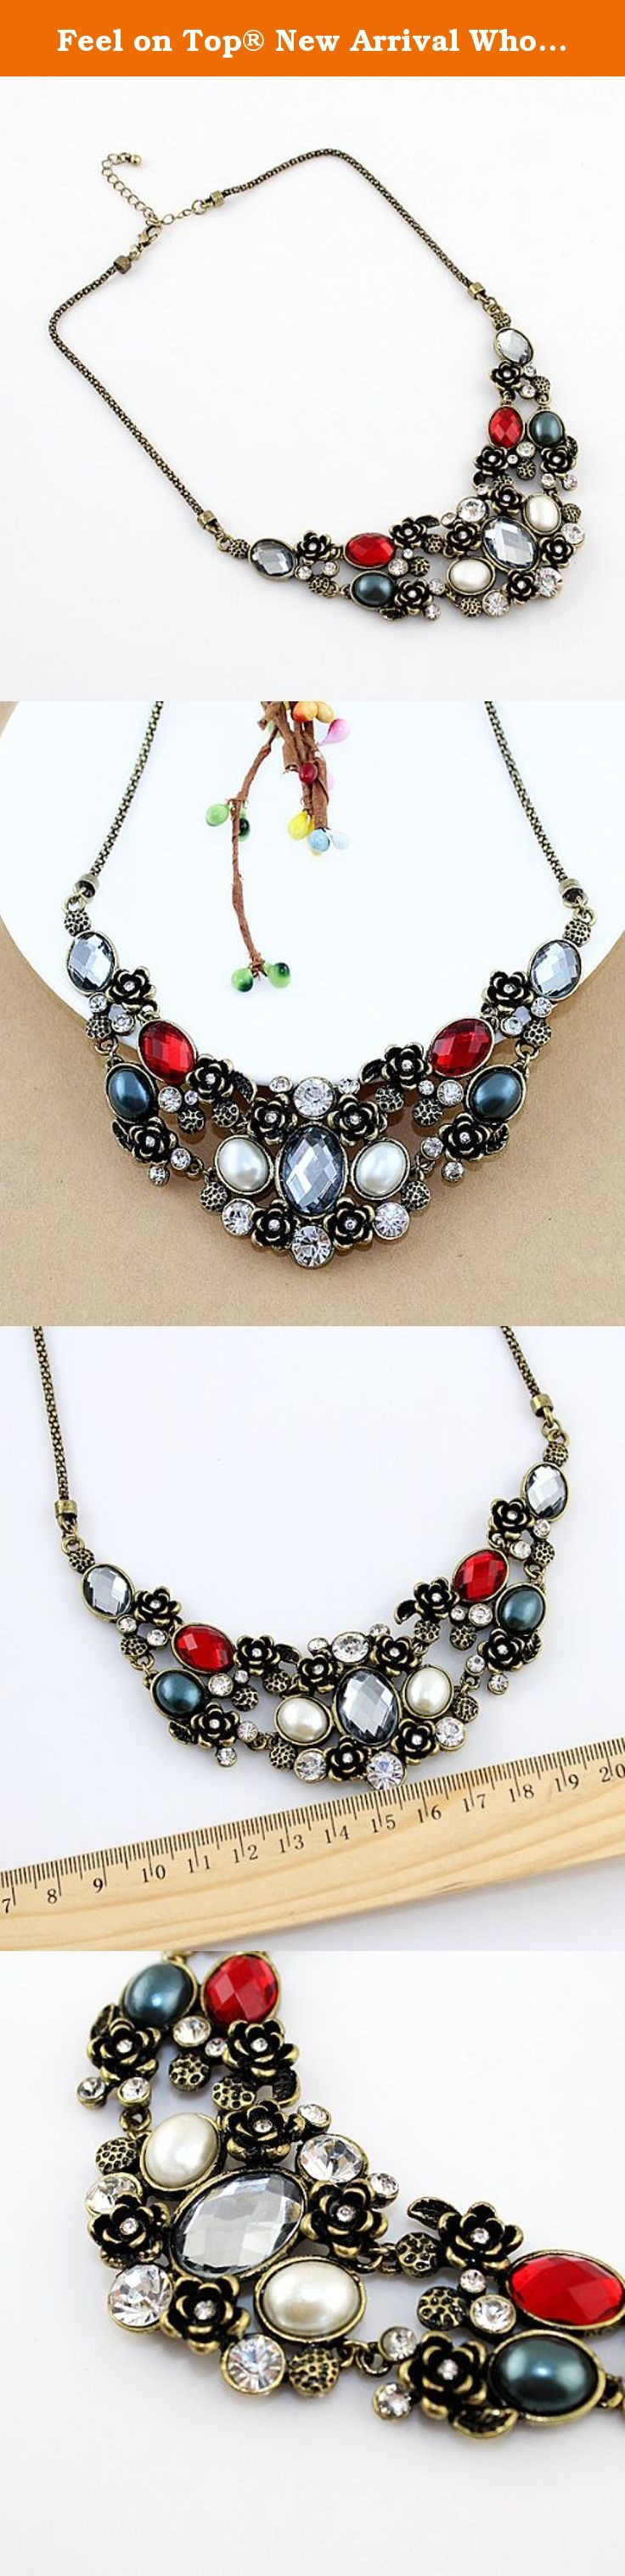 Feel on Top® New Arrival Wholesale Costume Jewelry Vintage Graceful Rhinestone Statement Necklace with Free Jewelry Pouch. New arrival charming vintage graceful crystal necklace and free shipping.